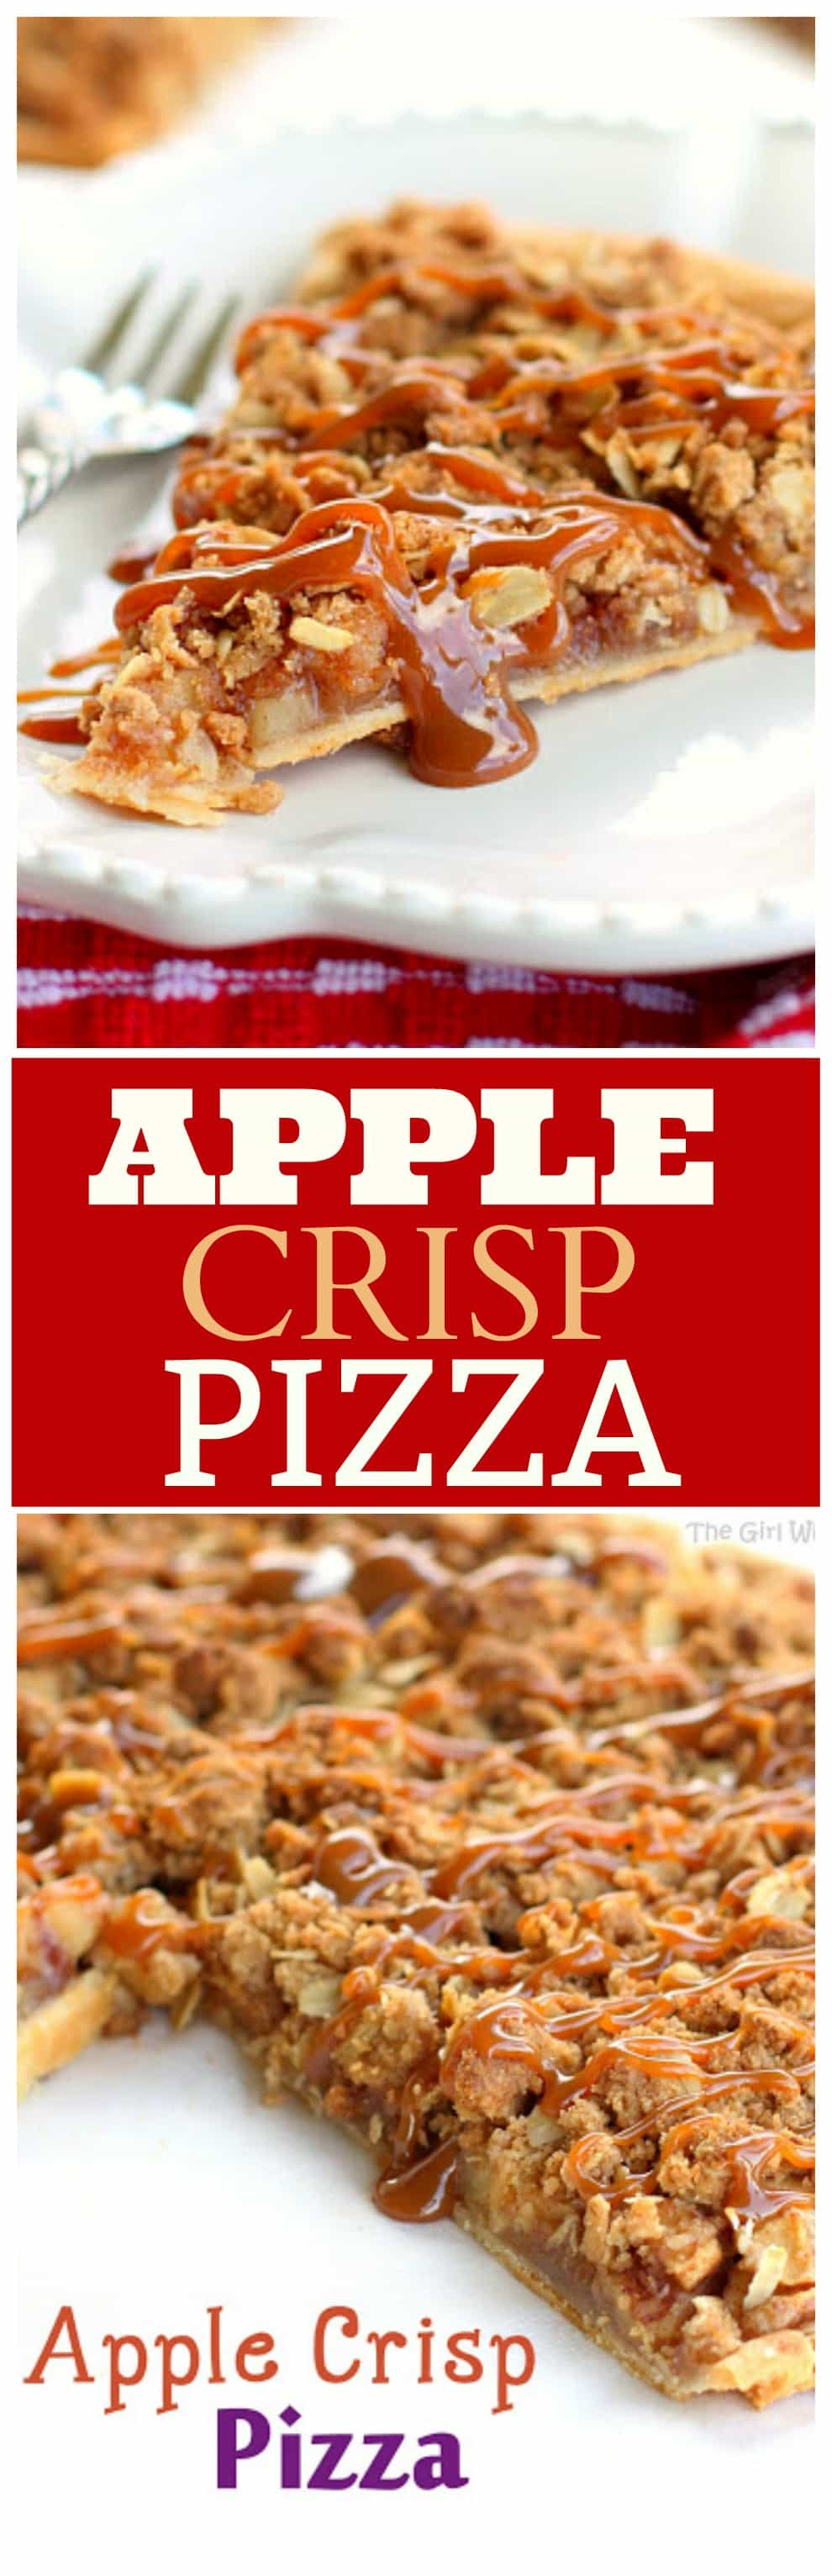 Apple Crisp Pizza - so easy! Apple Crisp toppings piled on a pie crust and baked! #apple #crisp #pizza #recipe #dessert